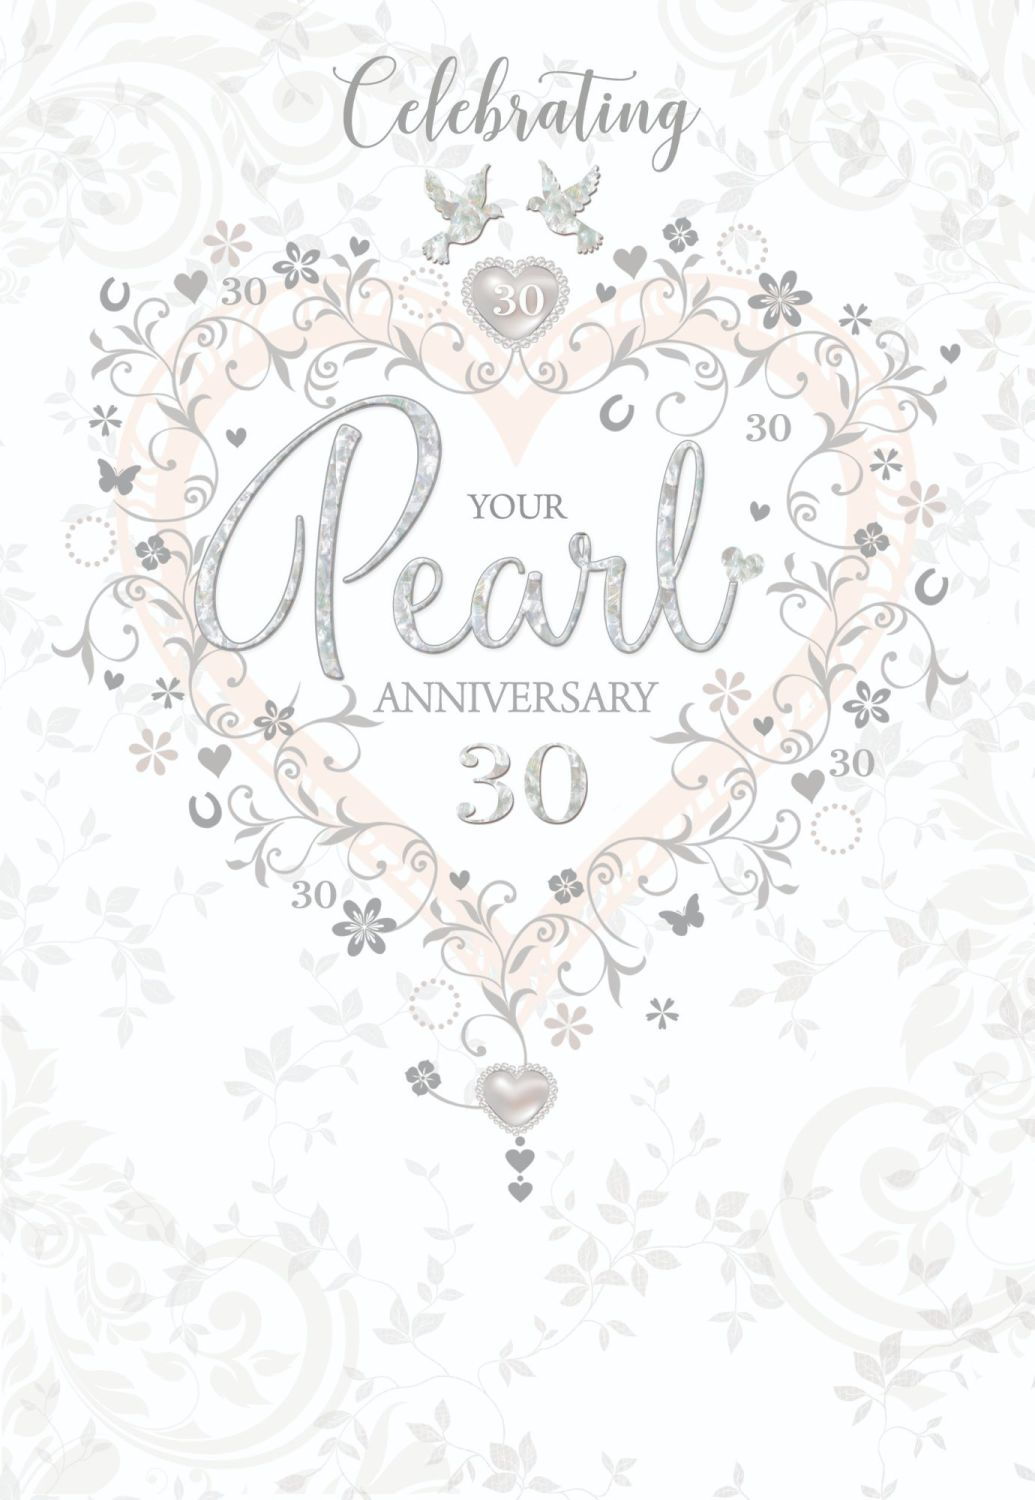 Celebrating Your Pearl Anniversary - 30th PEARL Anniversary CARDS - Anniver